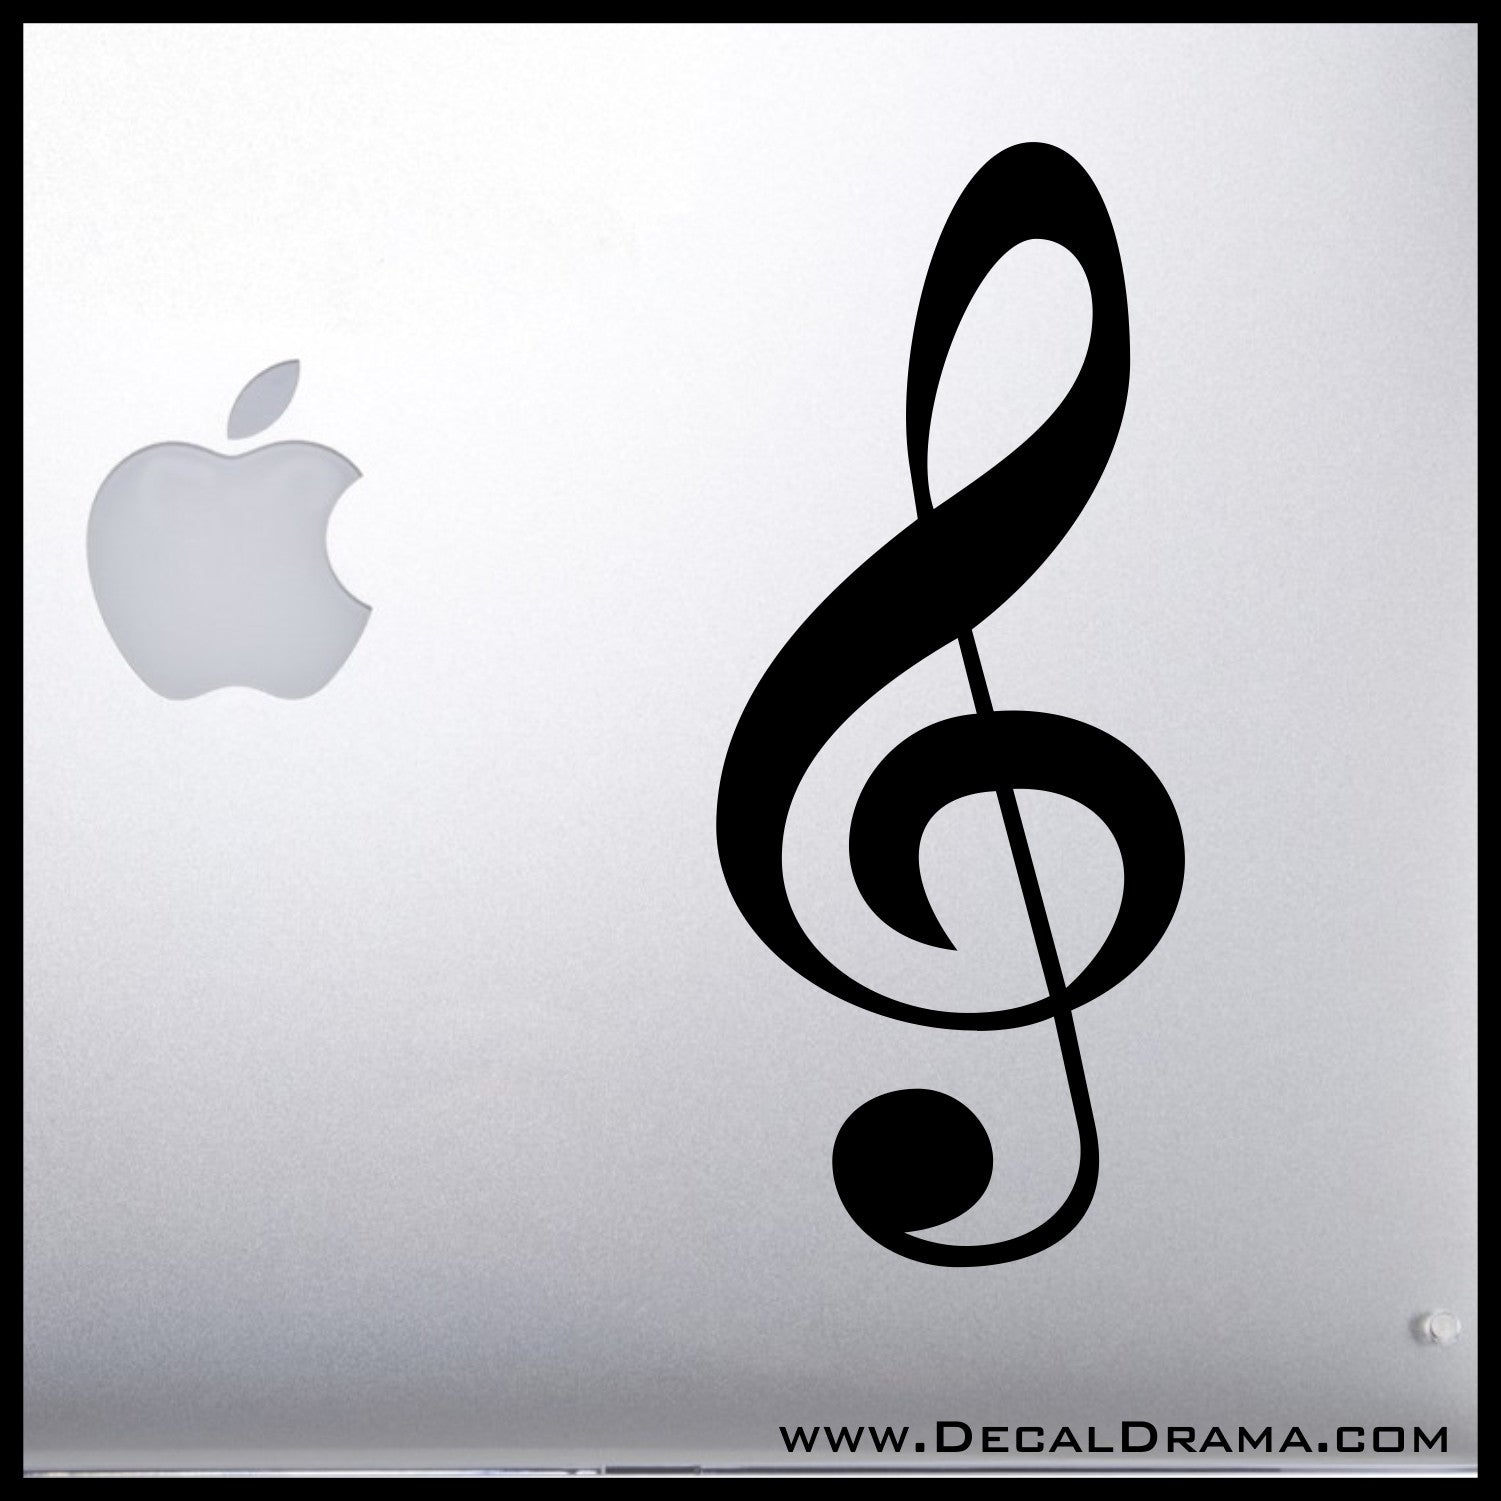 Treble Clef, Music symbol Vinyl Car/Laptop Decal